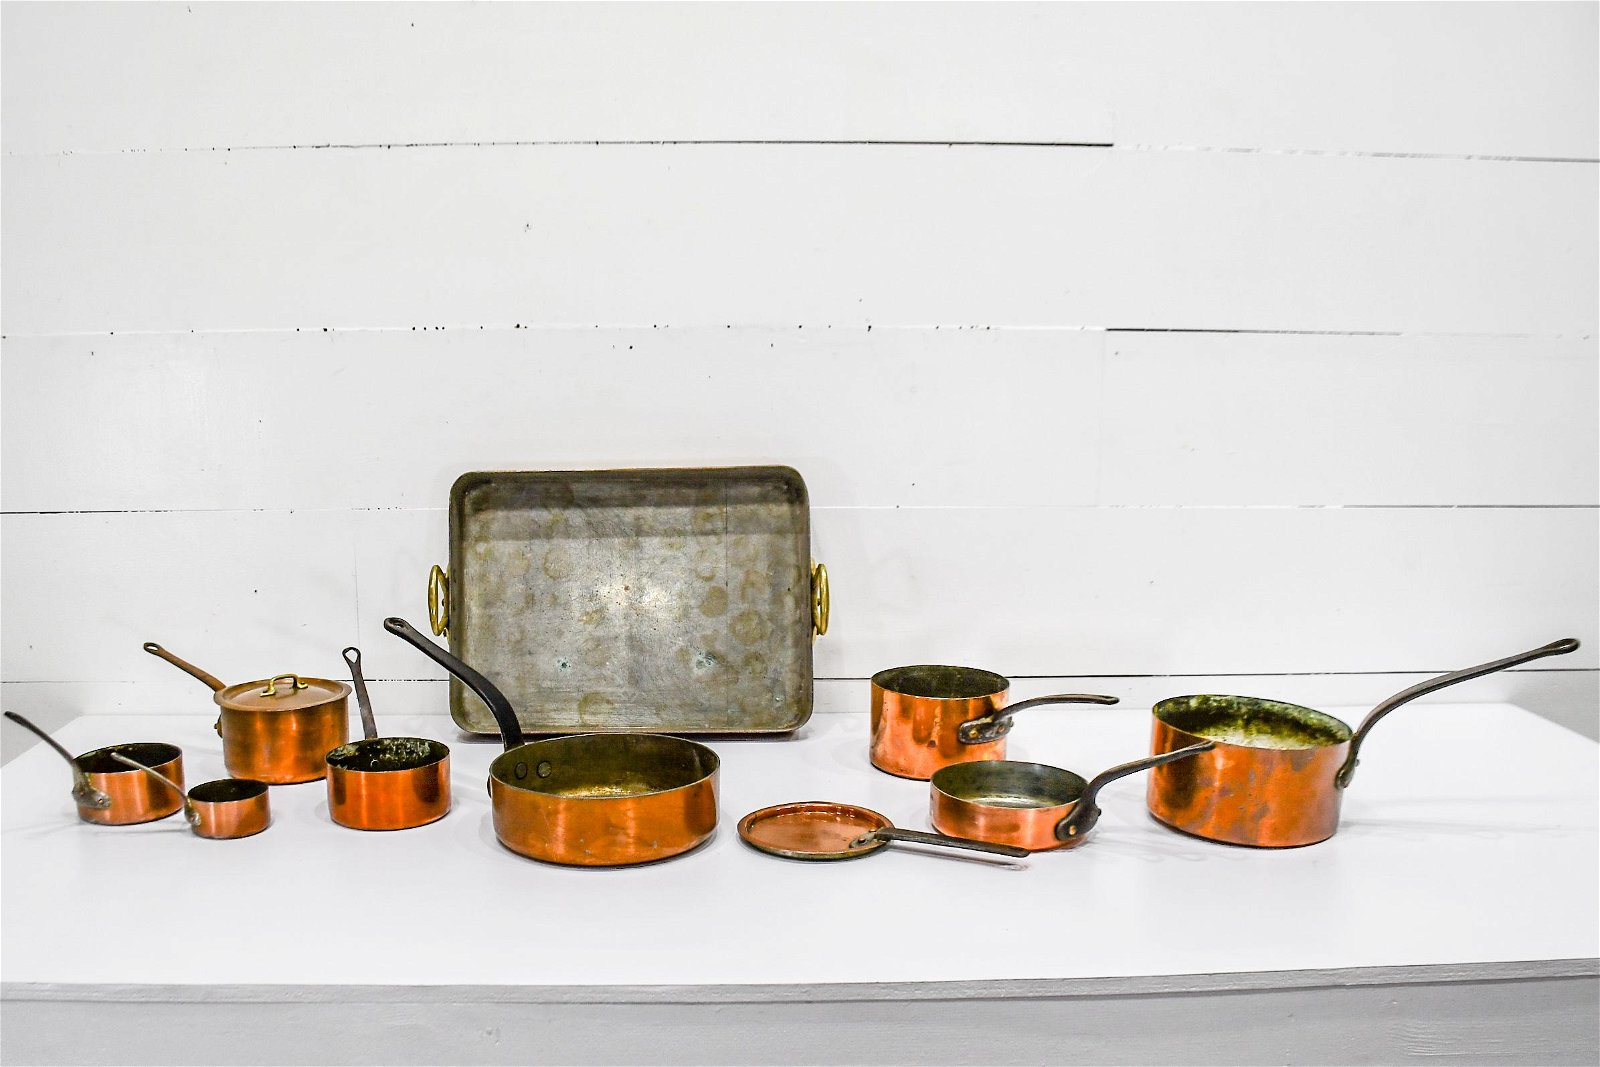 10pc. Lot of Copper Cookware